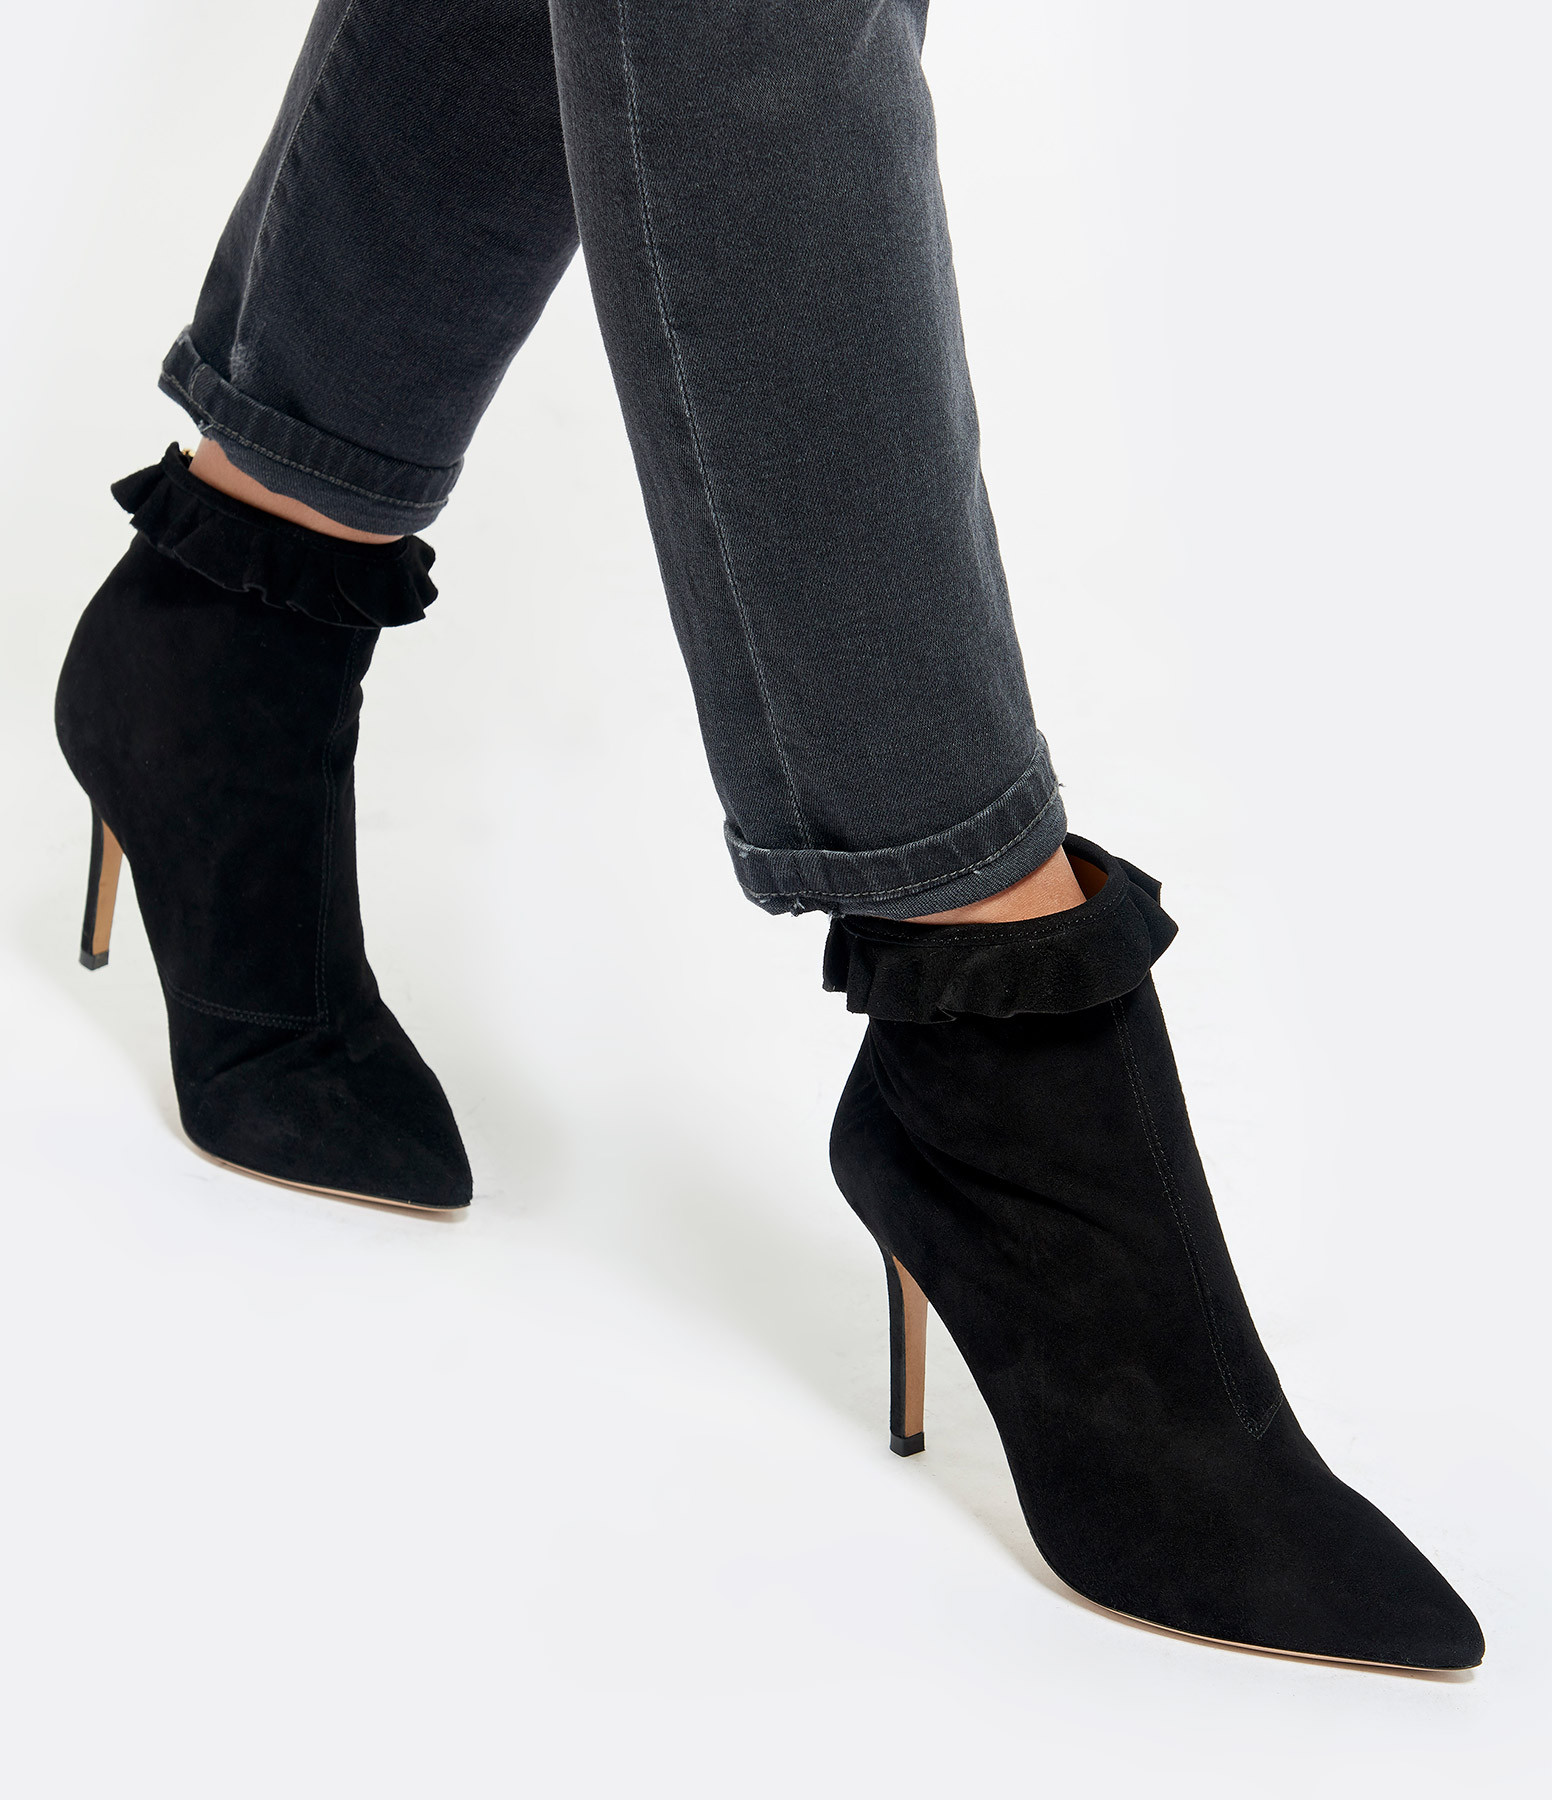 JEROME DREYFUSS - Bottines Suzy 85 Collerette Chèvre Noir